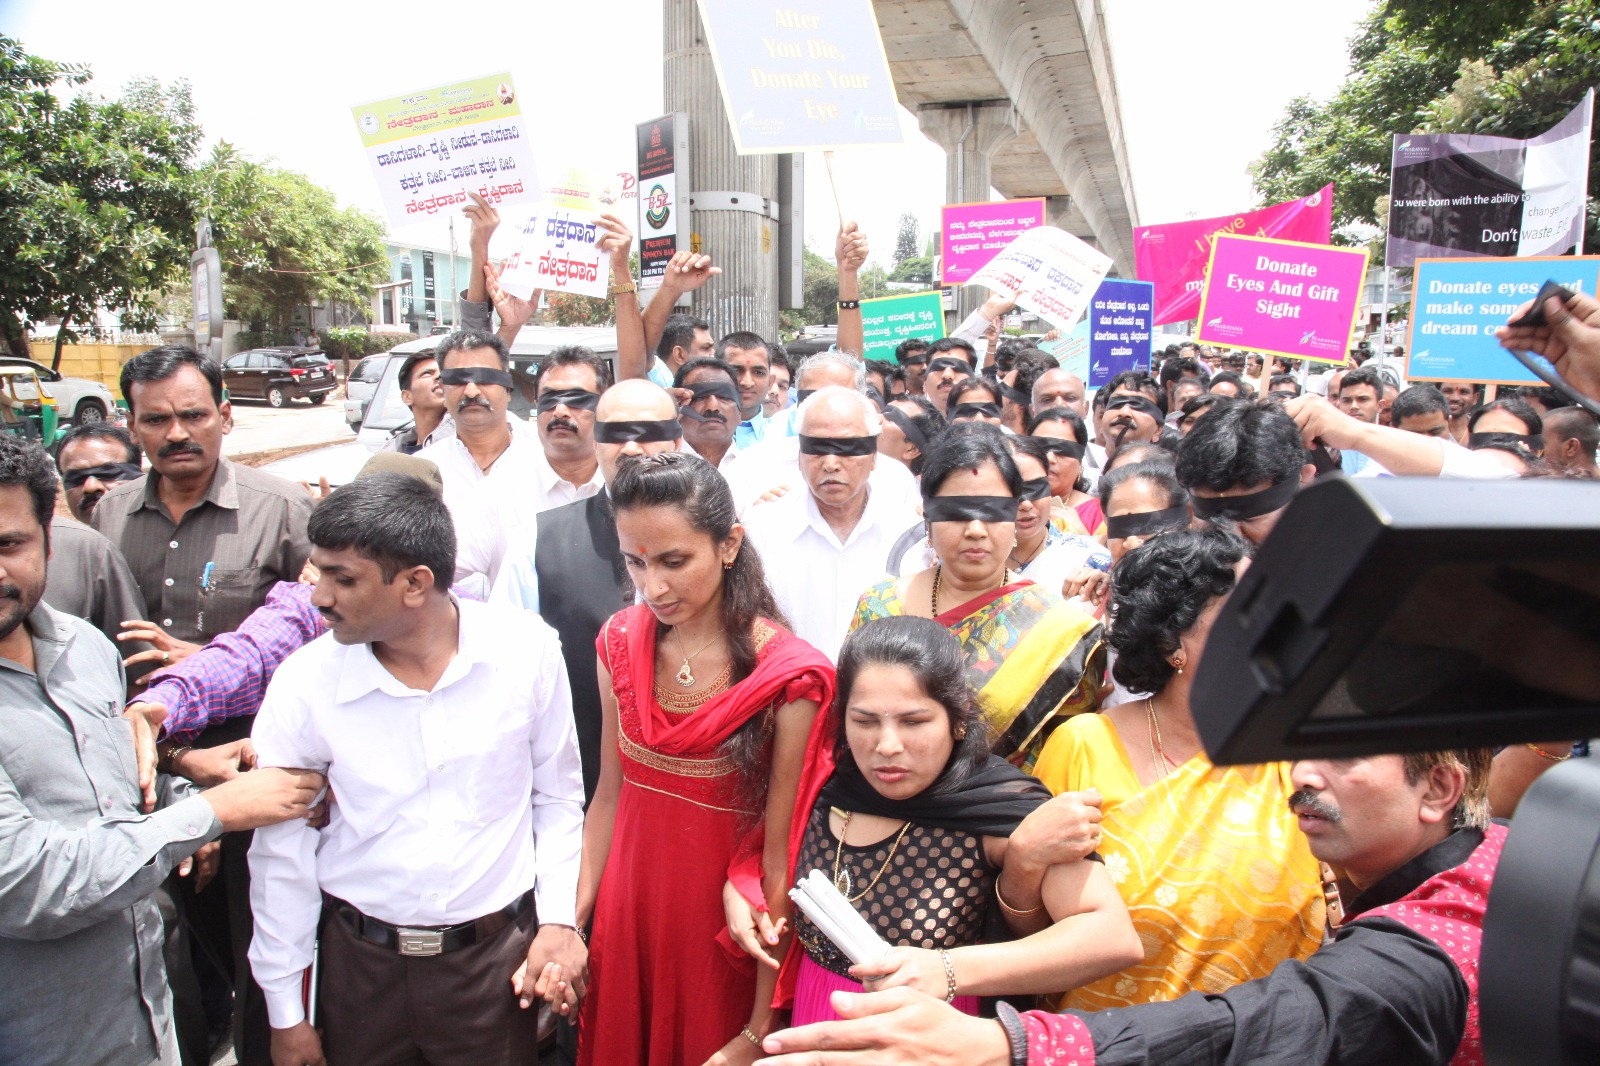 BJP President BS Yeddyurappa, Cine Stars, Social leaders participated in a BLIND WALK, an awareness walkathon from Narayana Hrudayalaya to ISCKON, Bengaluru